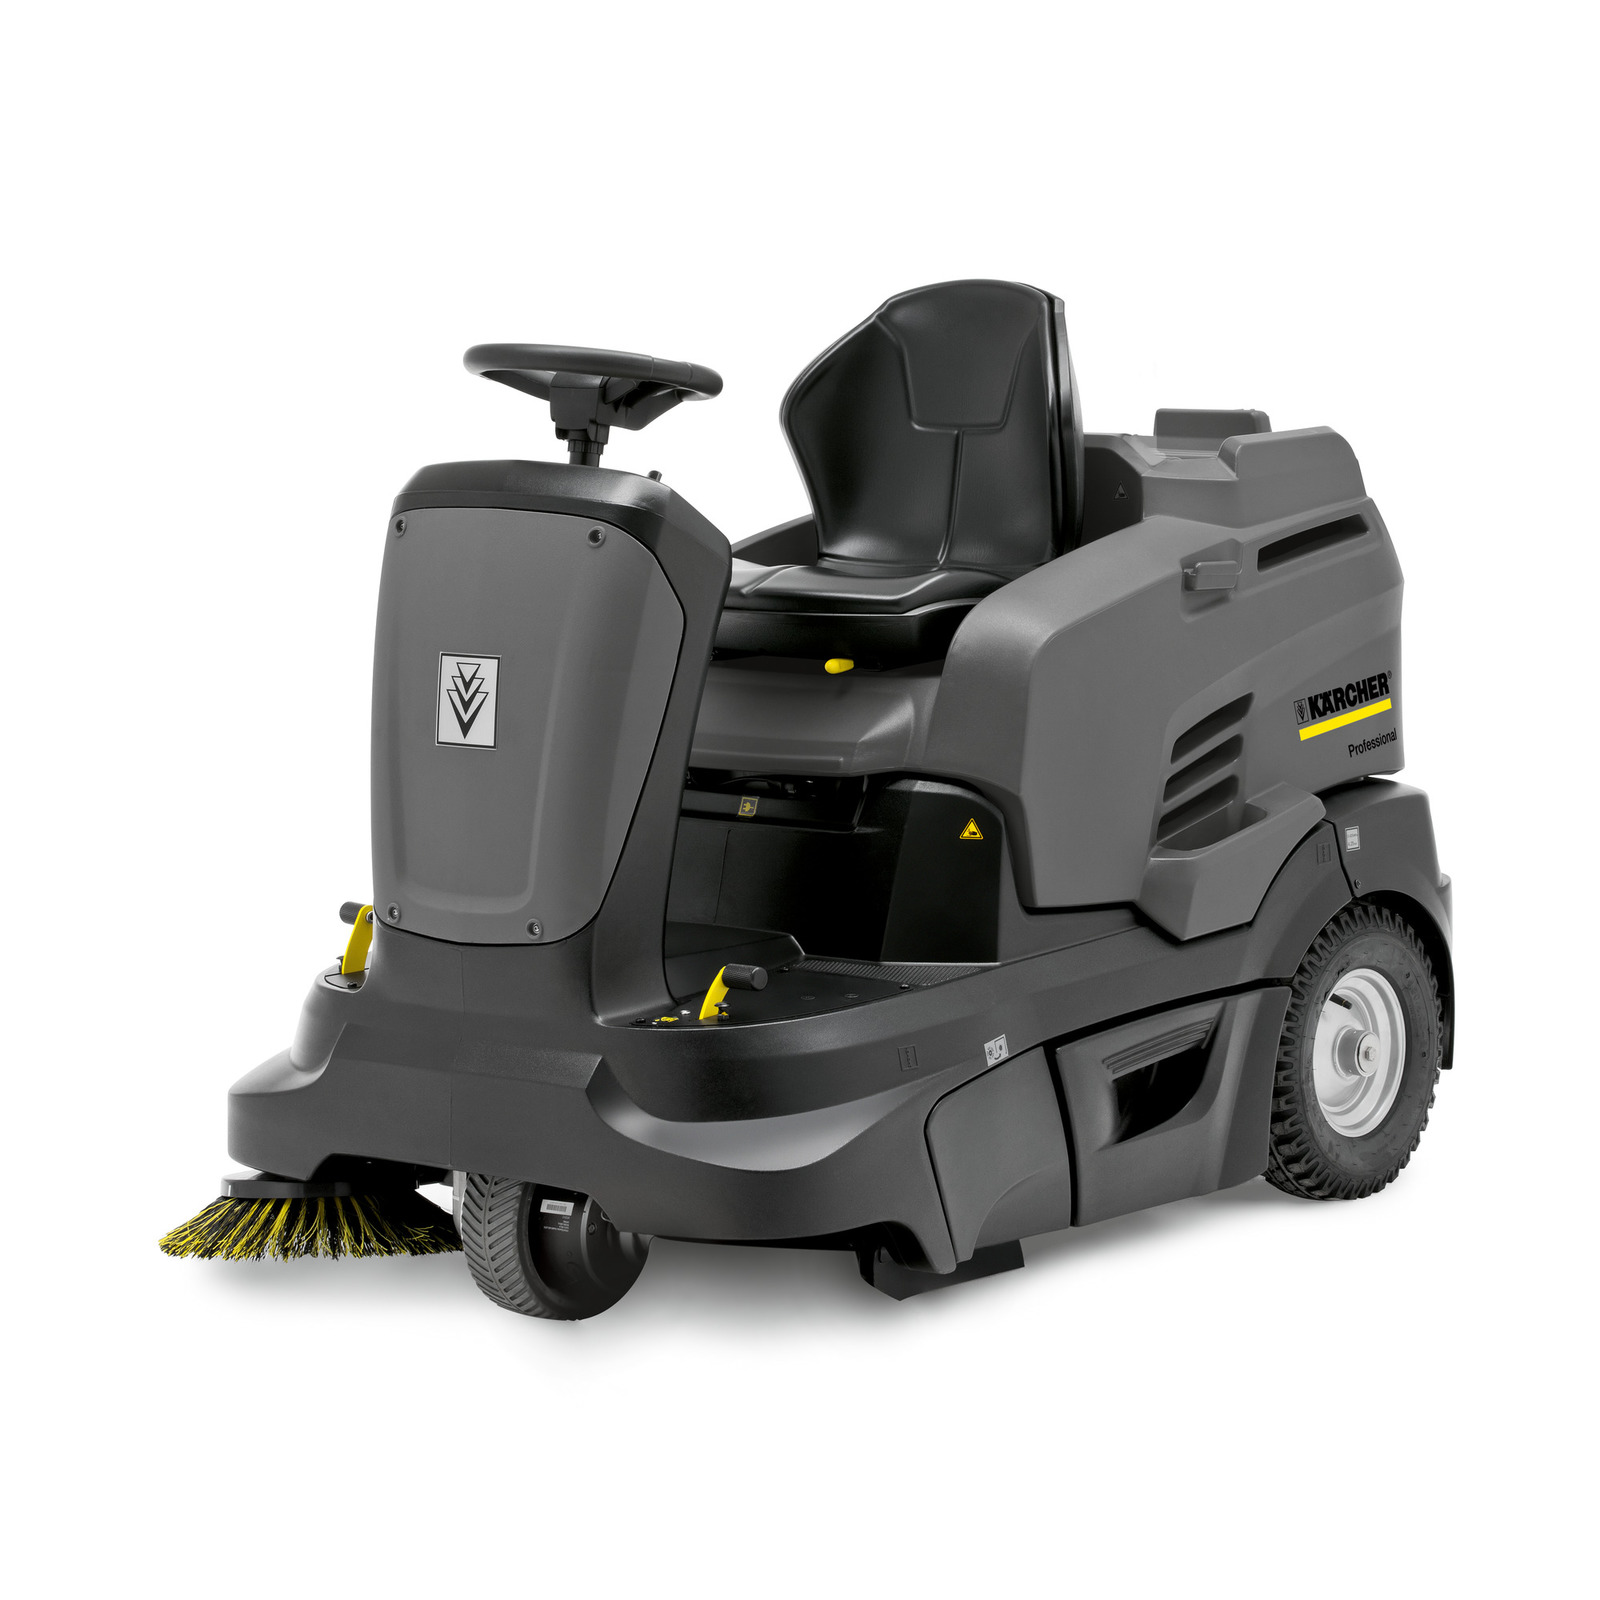 Vacuum Sweepers Ride On K 228 Rcher